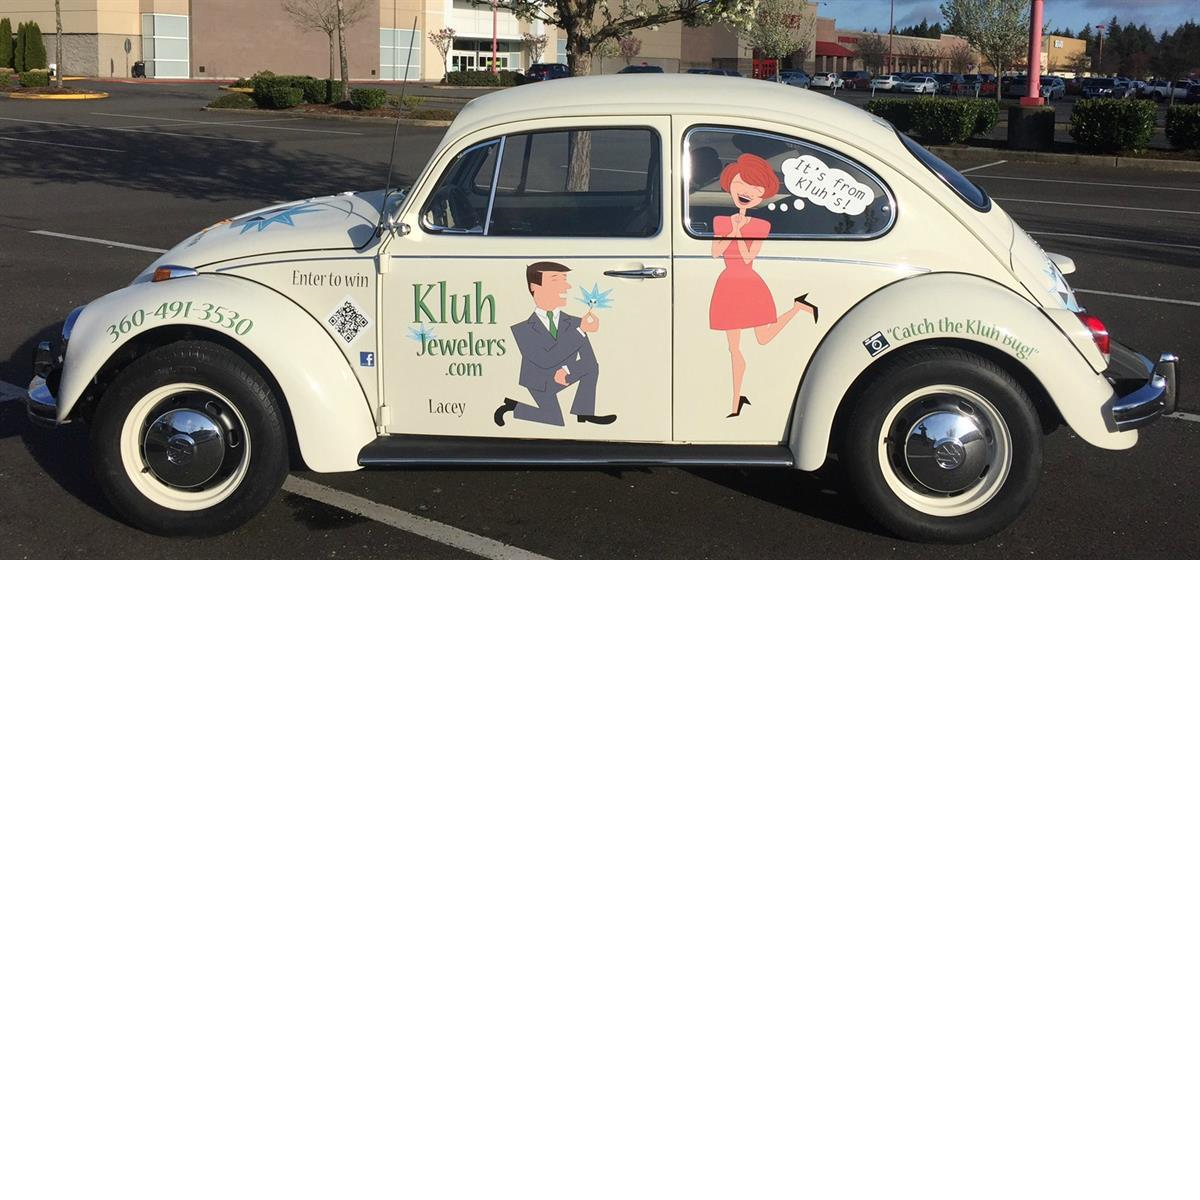 Kluh_jewelers_bug_volkswagon_beetle_kluhbug_proposal